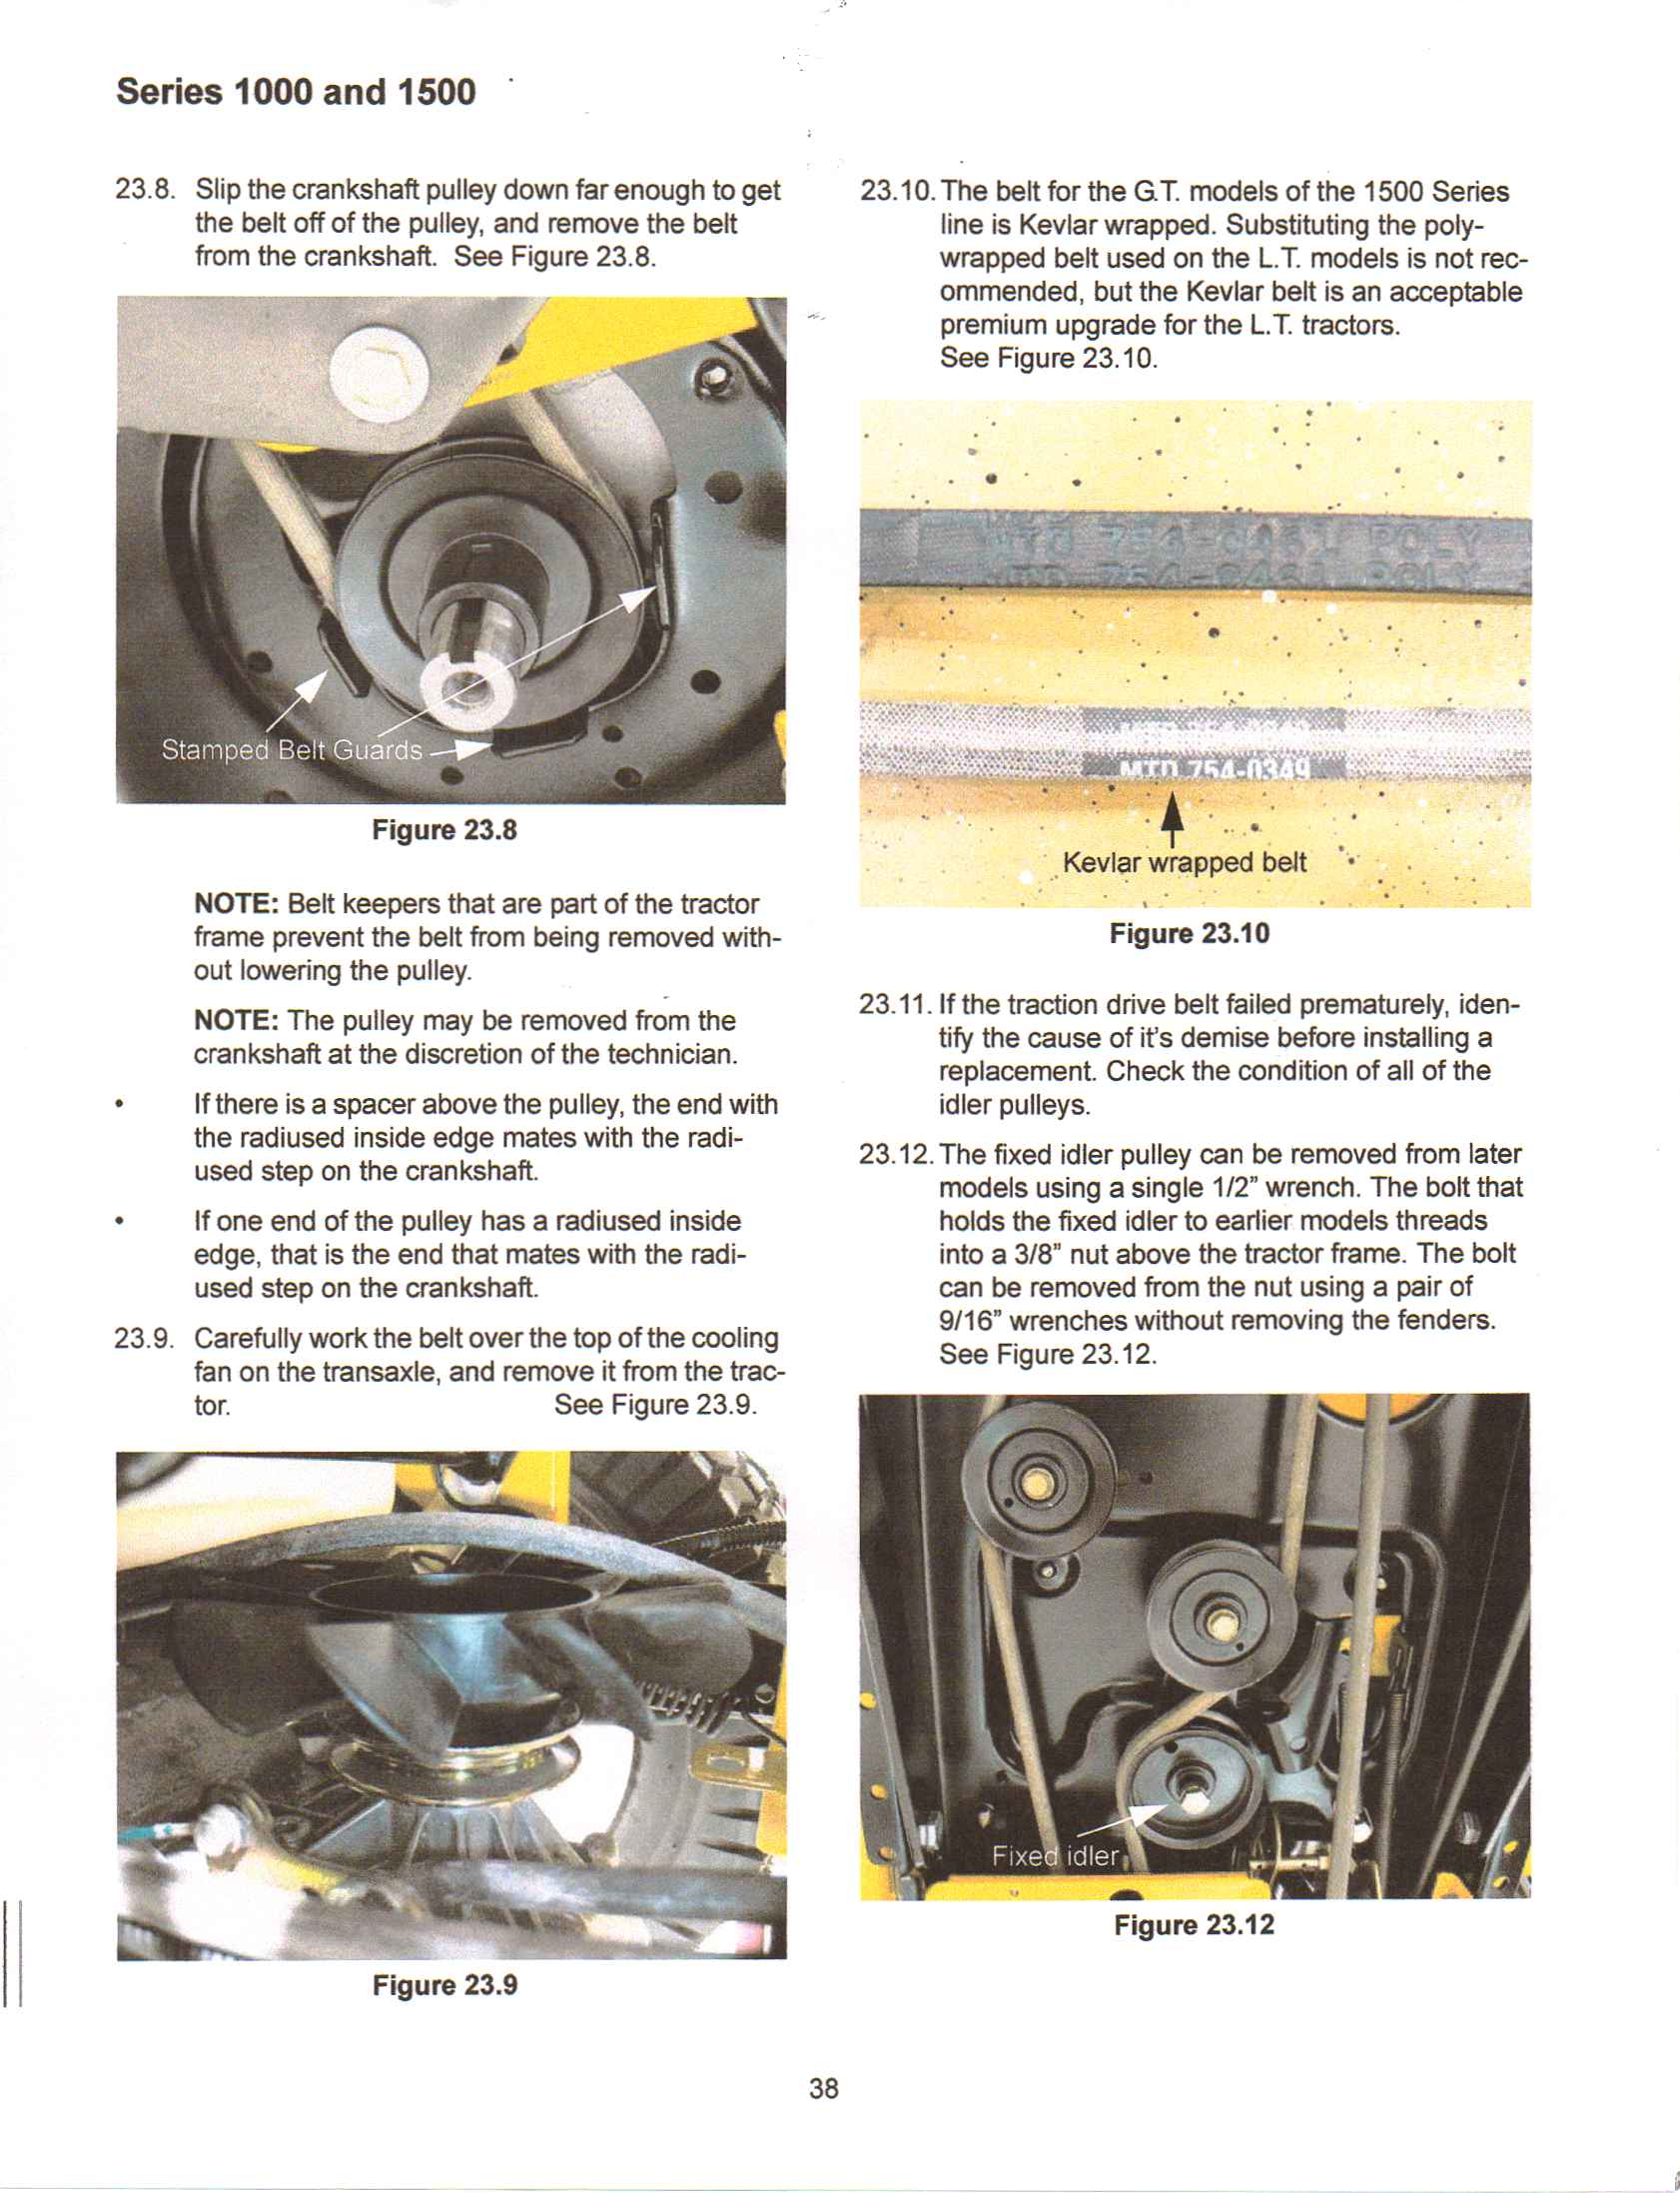 2012 05 31_214545_cub_cadet_belt_replacement2 wiring diagram for cub cadet lt1045 yhgfdmuor net cub cadet 2160 wiring diagram at aneh.co